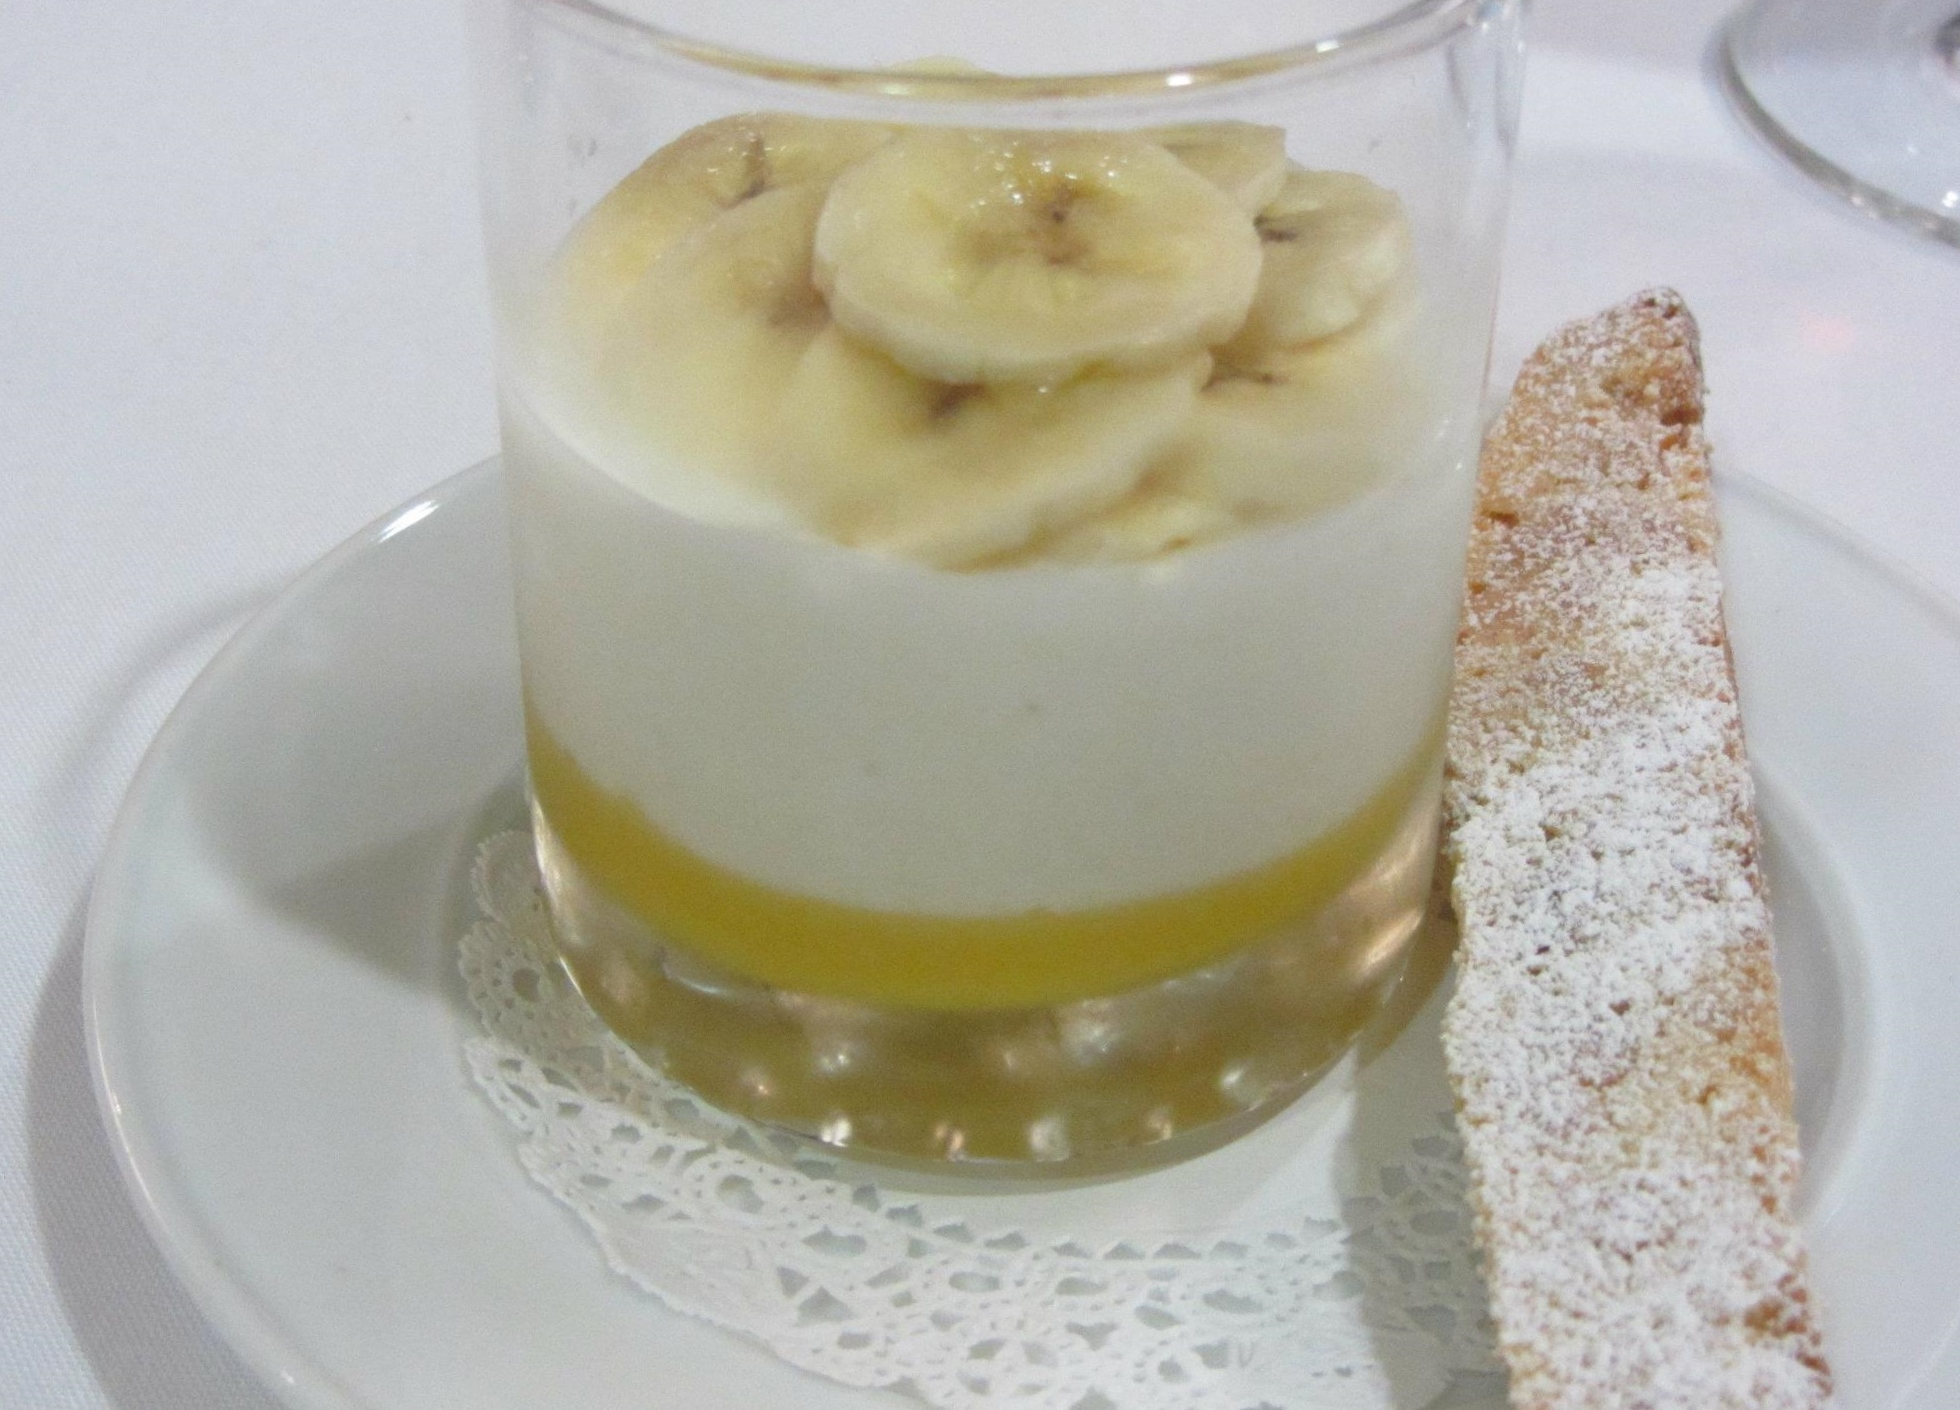 Panna cotta with passionfruit curd and banana-macadamia biscotto